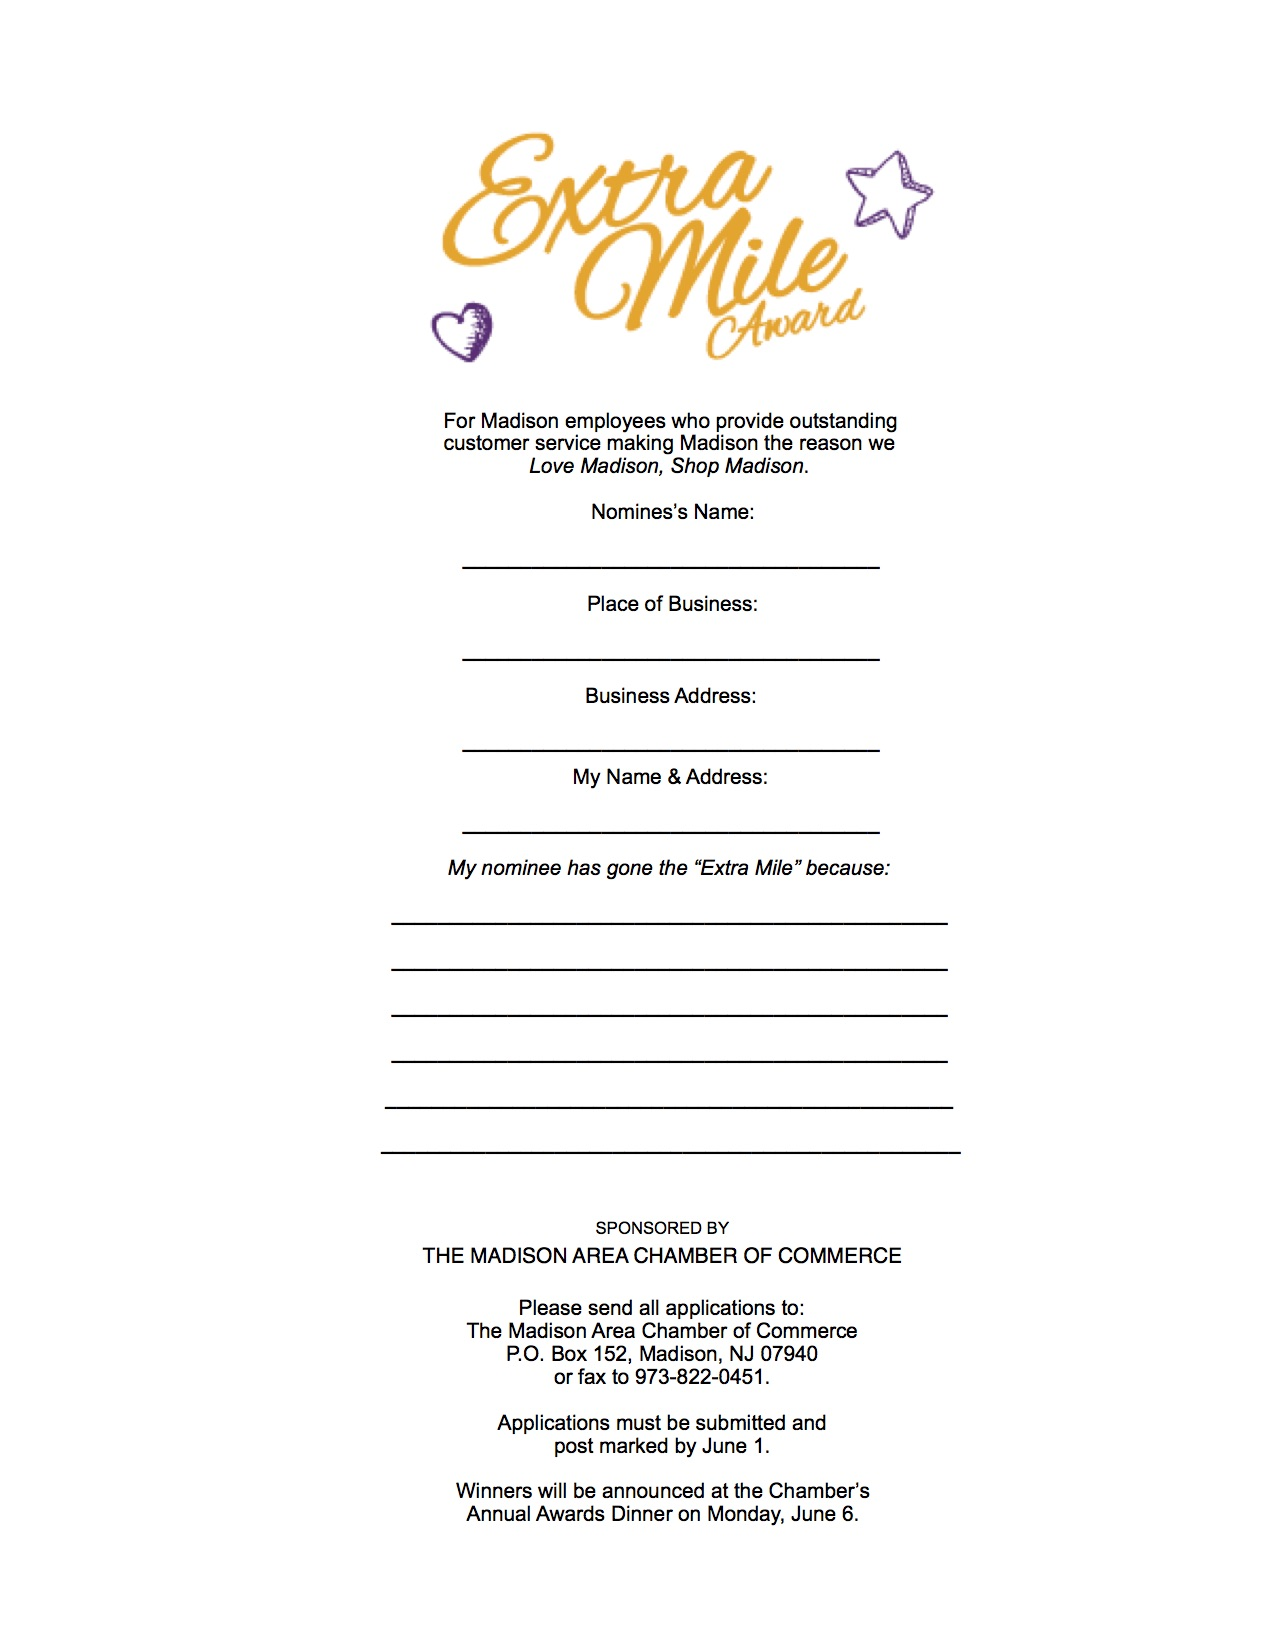 bca77339184d22aa9e55_Extra_Mile_Award_2016_Nomination_Form_Single_copy.jpg